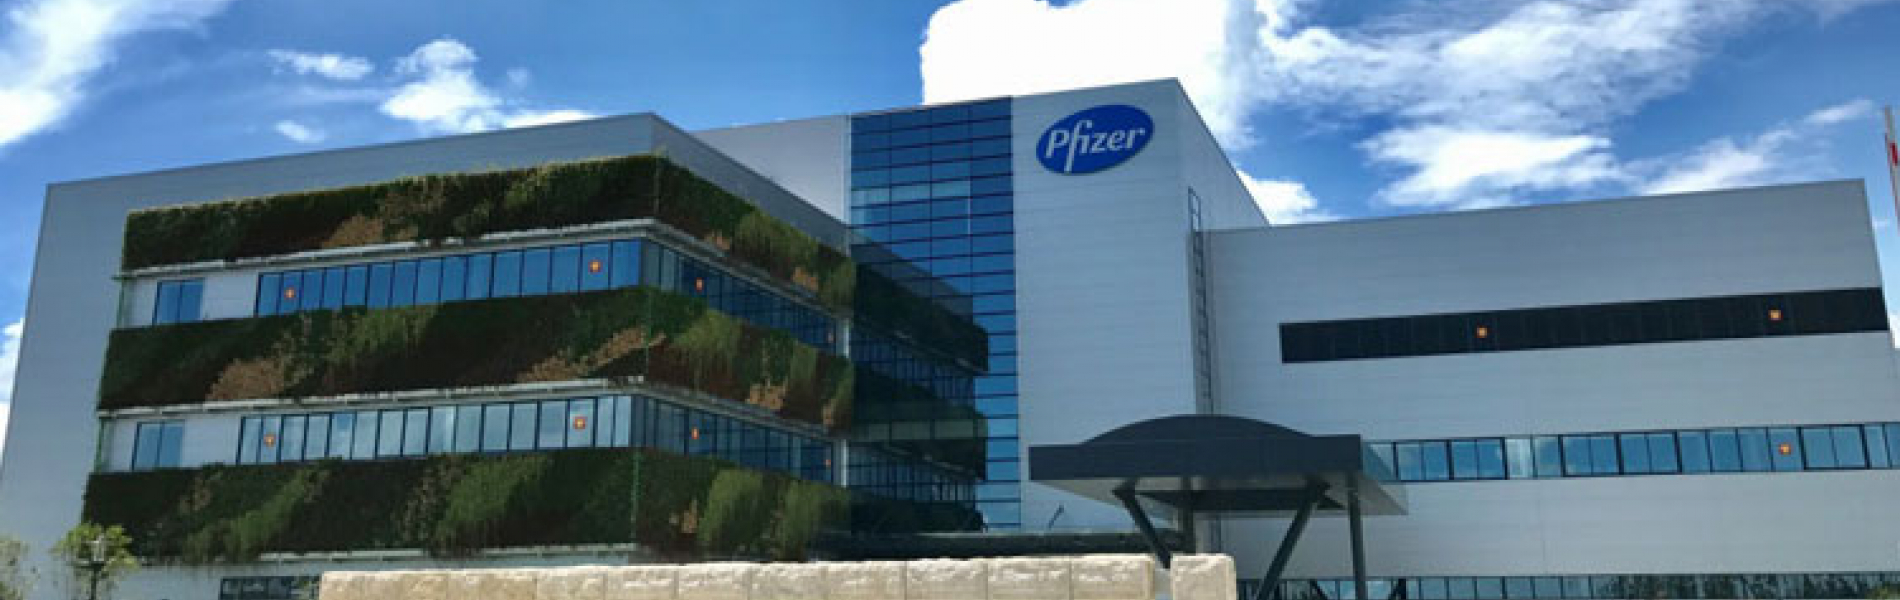 Wyeth, a Pfizer Company – 2018 Facility of the Year Awards Category Winner for Sustainability  - ISPE Pharmaceutical Engineering